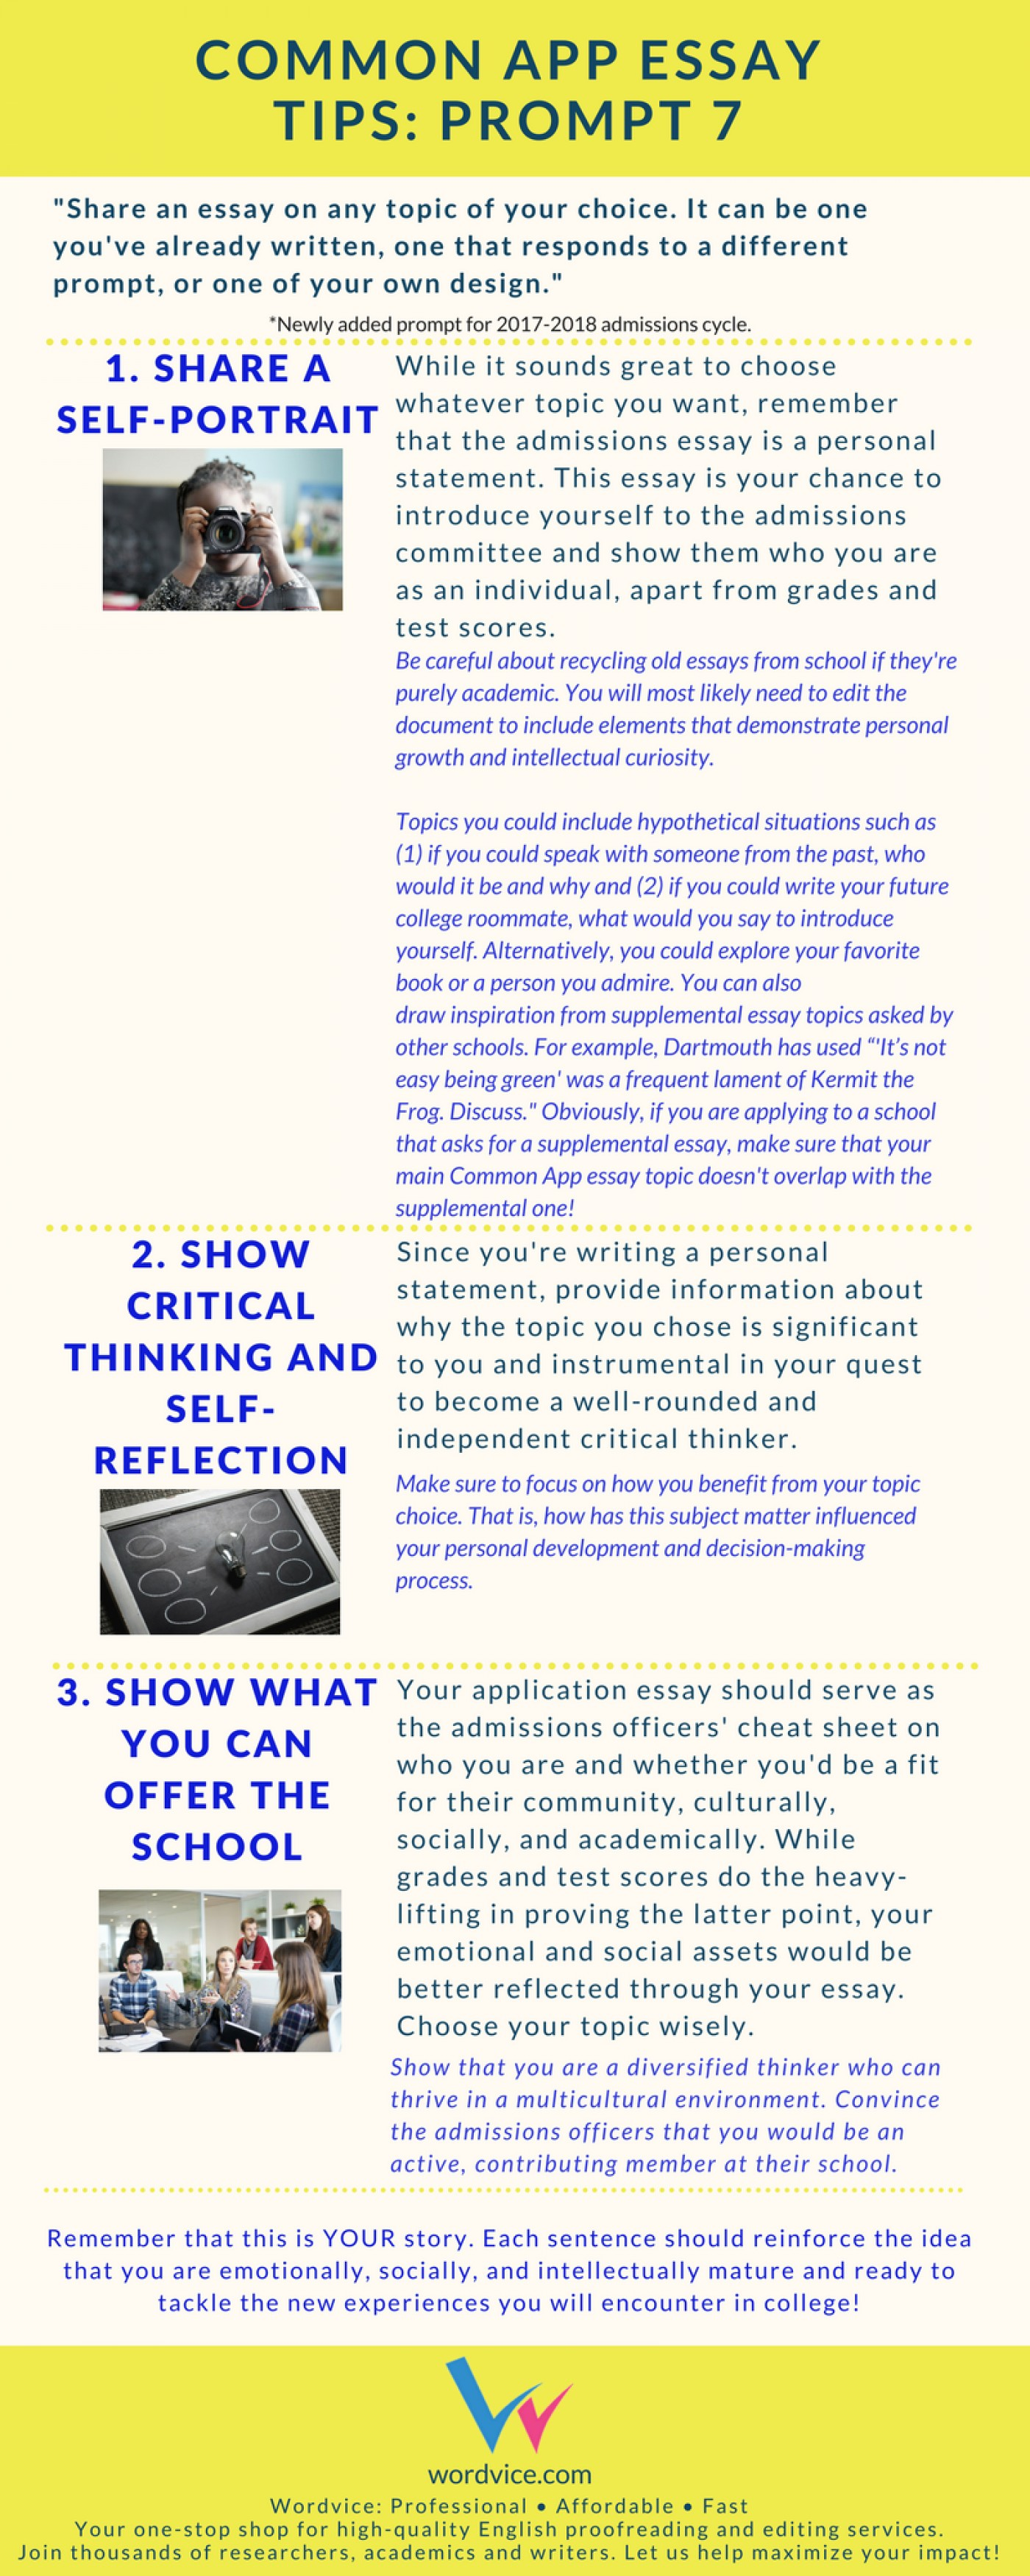 010 Common Application Essay Prompts Example App Brainstormprompt Best 2017 2017-18 A Guide 1400